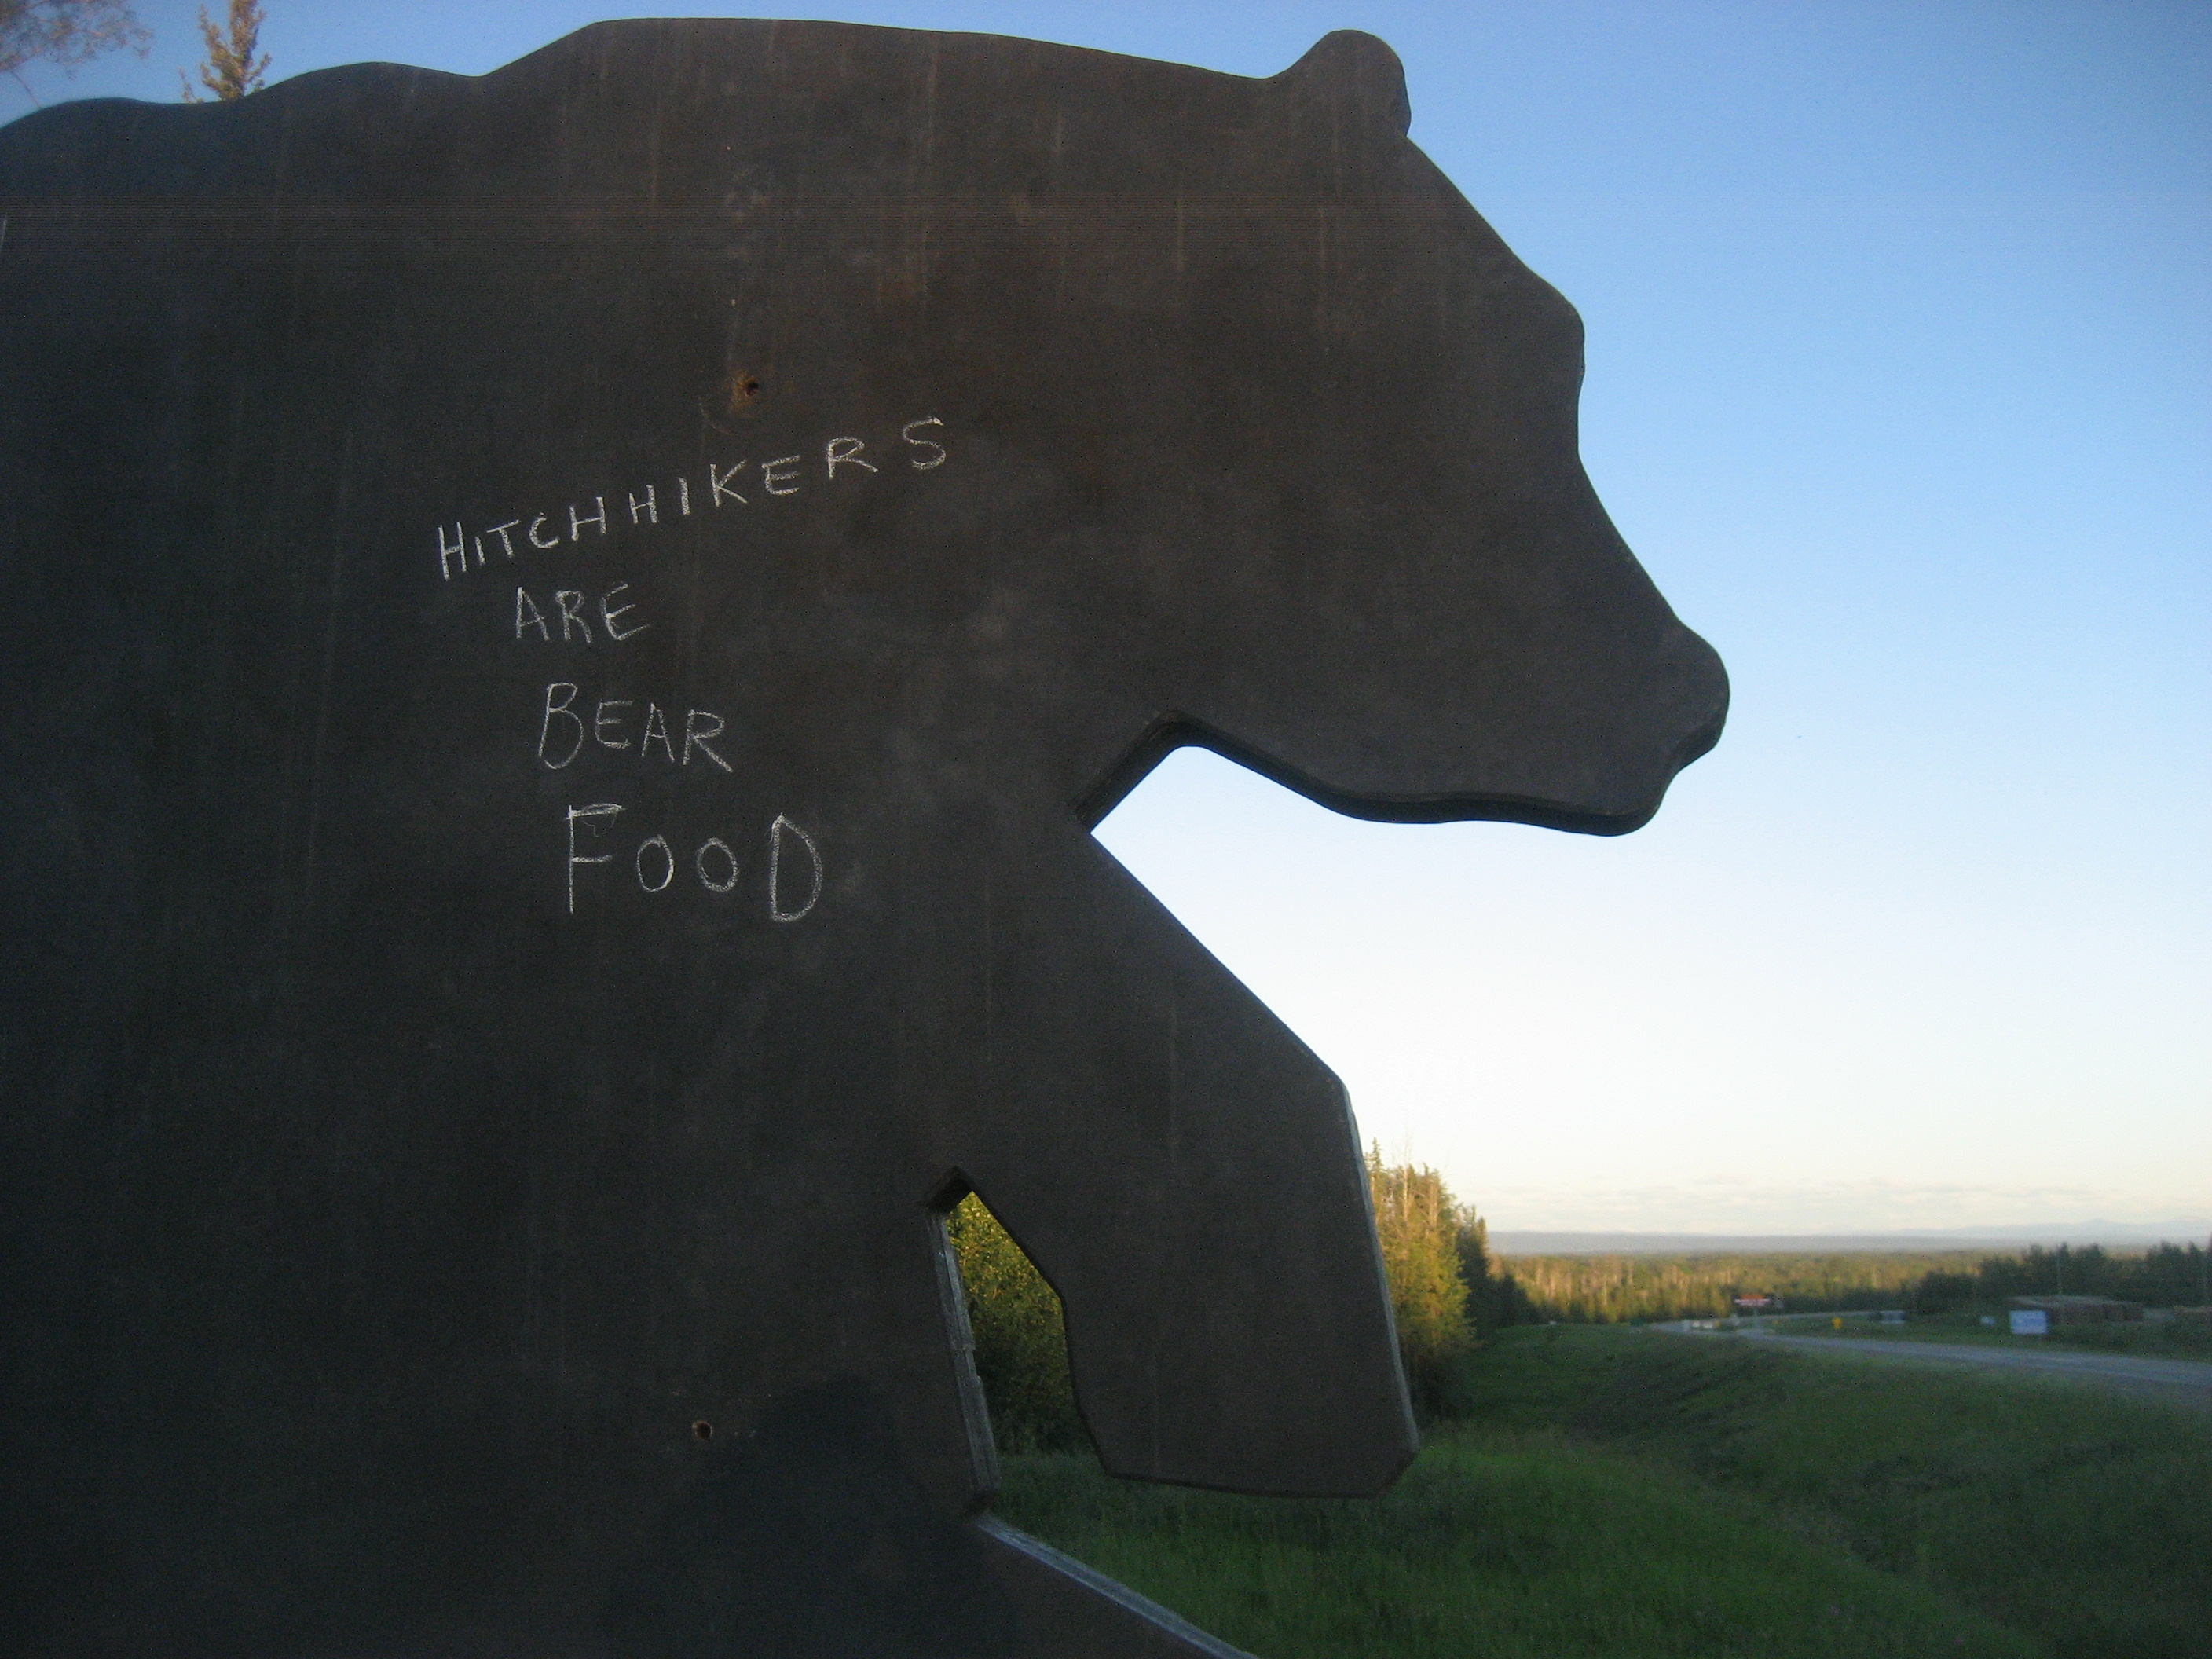 Hitchhikers are Bear Food